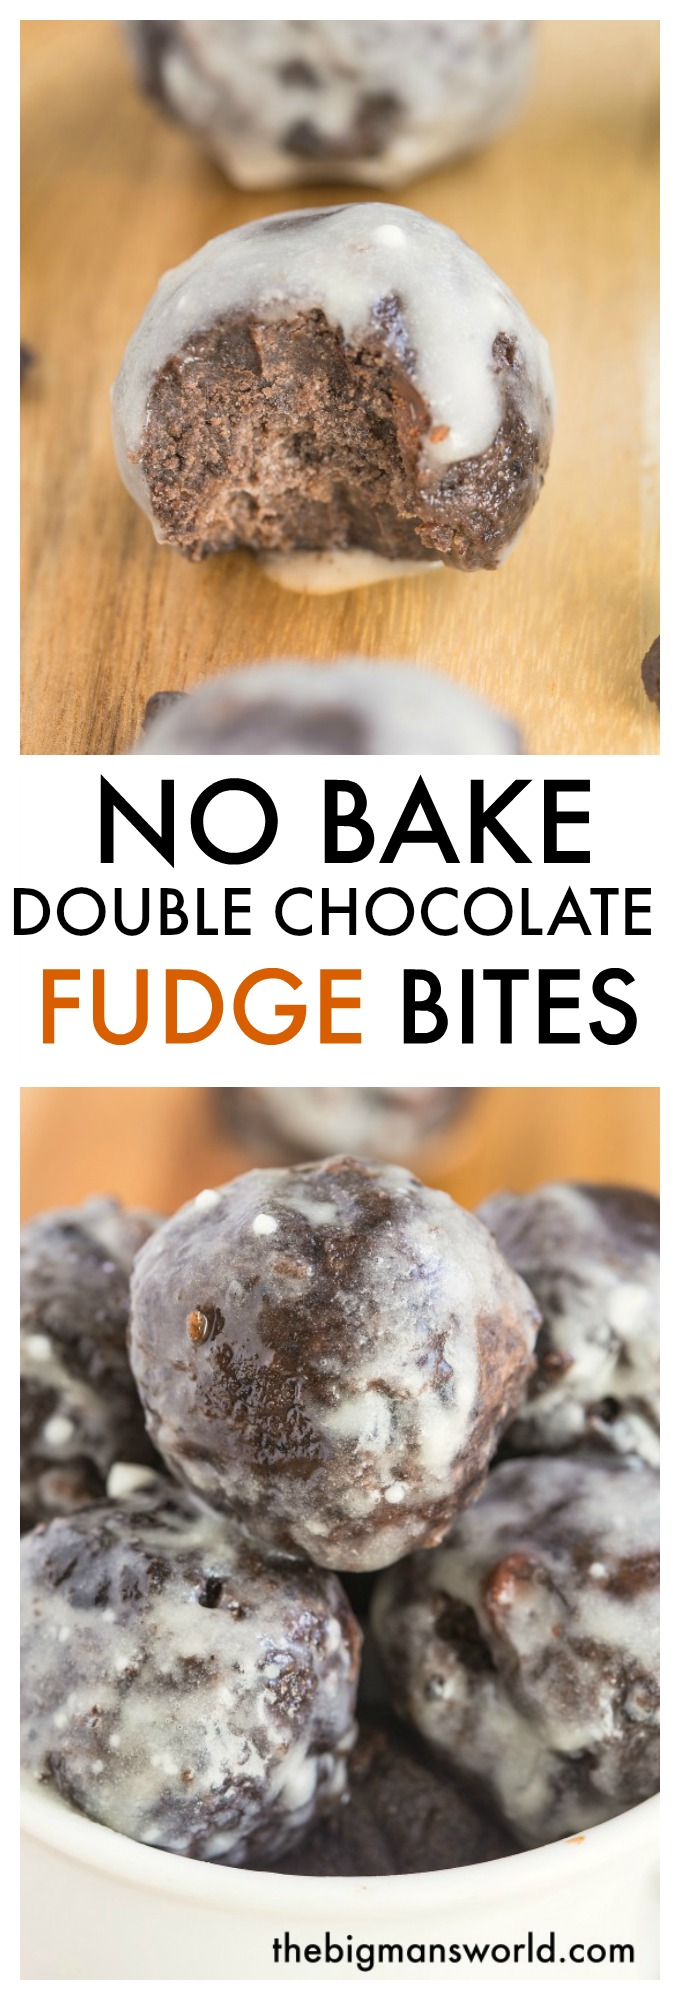 No Bake Double Chocolate Fudge Bites. These healthy no-bake double chocolate bites are delicious, packed full of wholesome ingredients and are a better sweet snack to enjoy over something packaged.